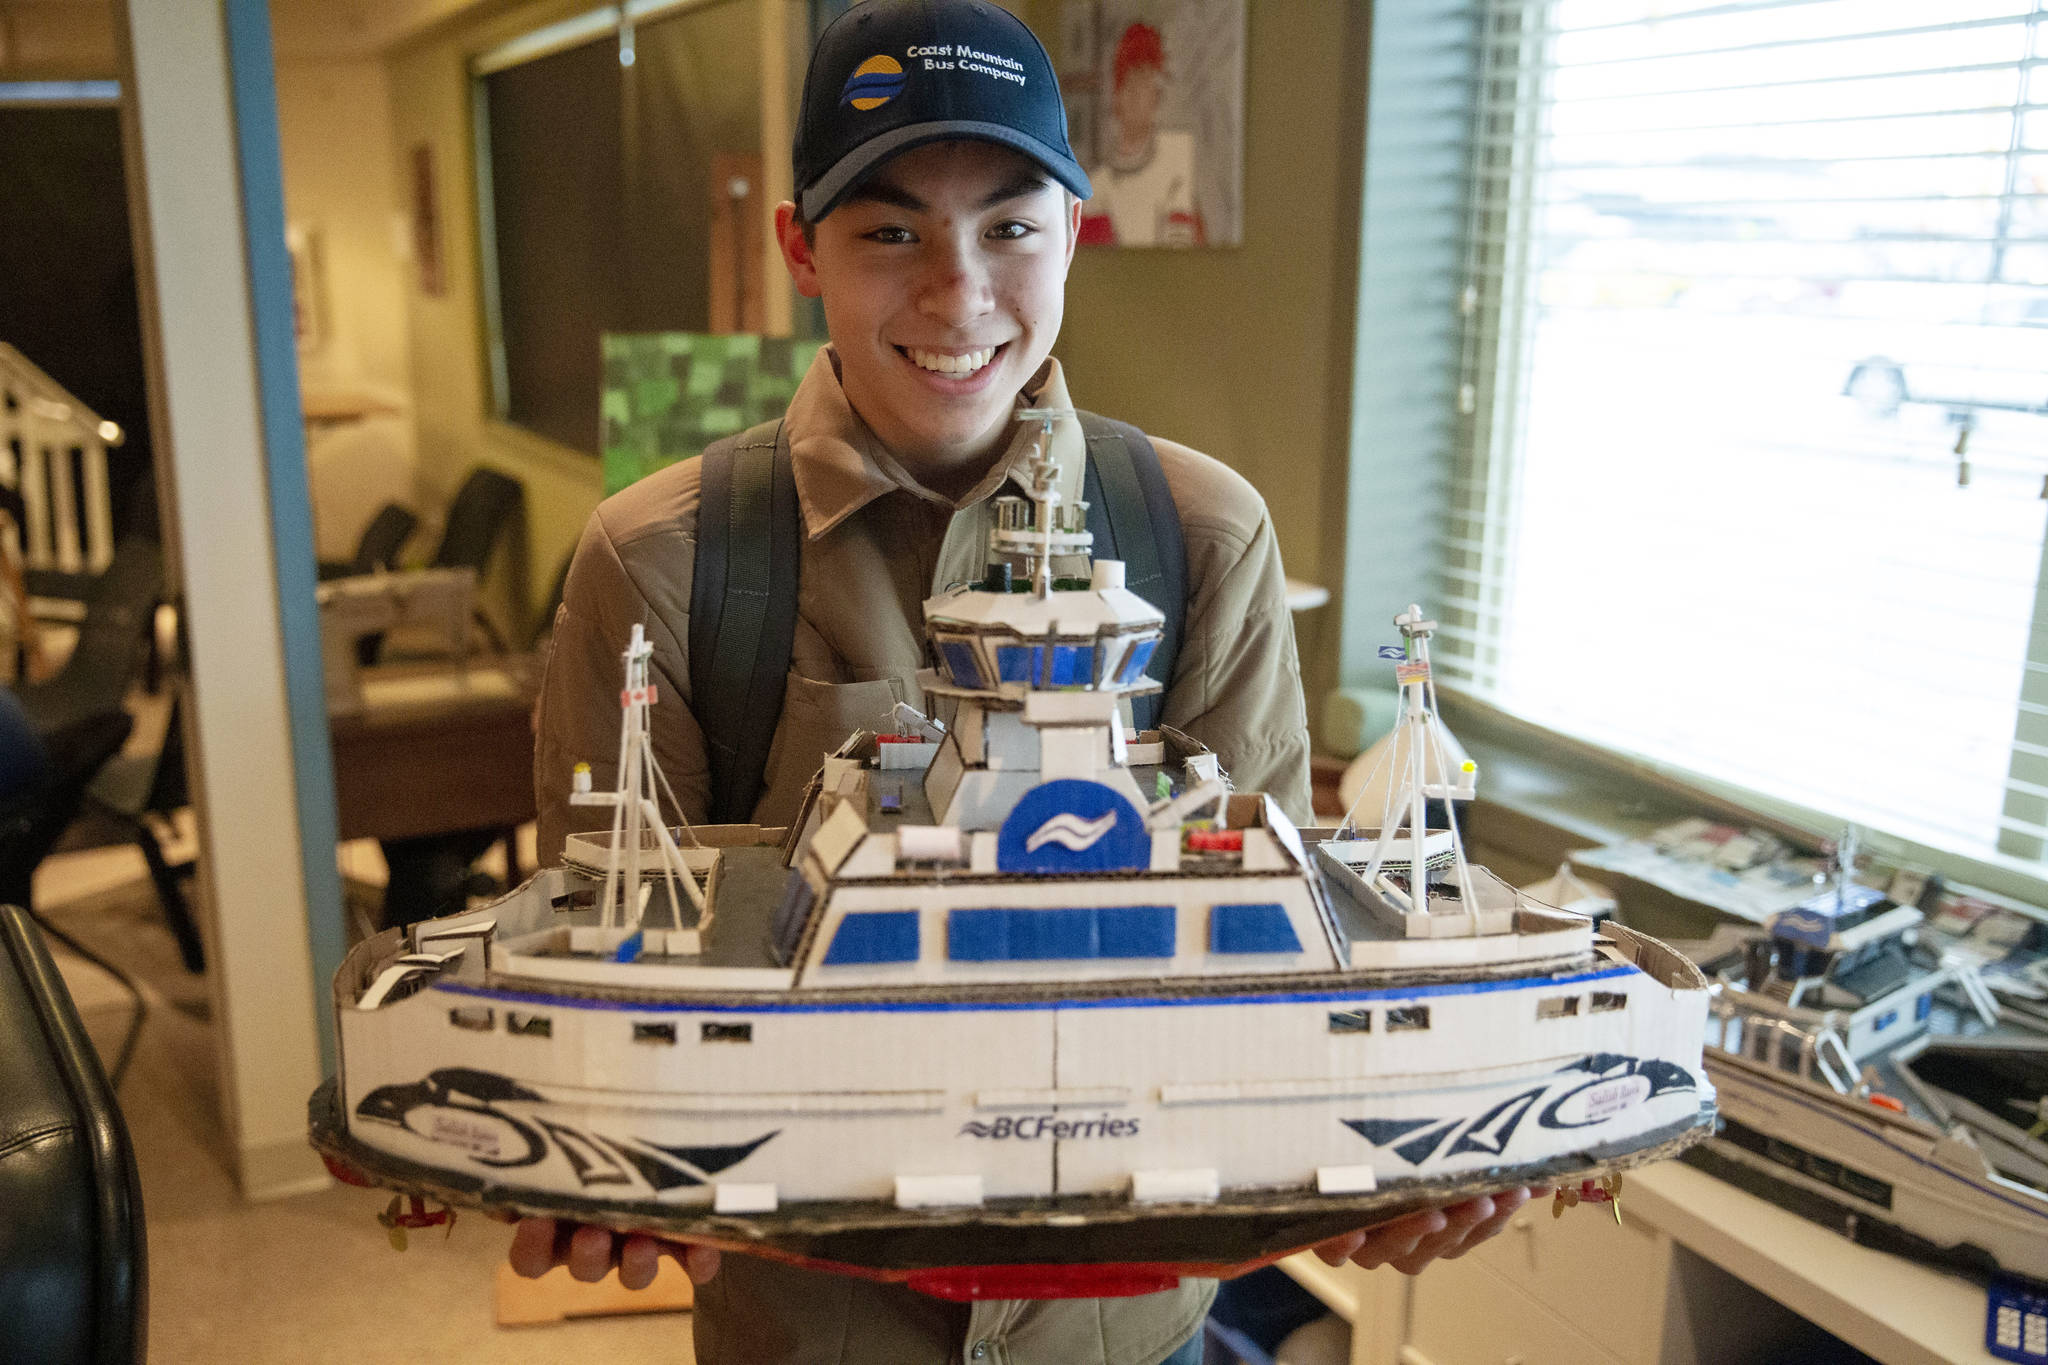 Josh Yeung has created a variety of BC Ferries models for the various ships in the fleet, with the goal ultimately to work for the corporation. Photo submitted